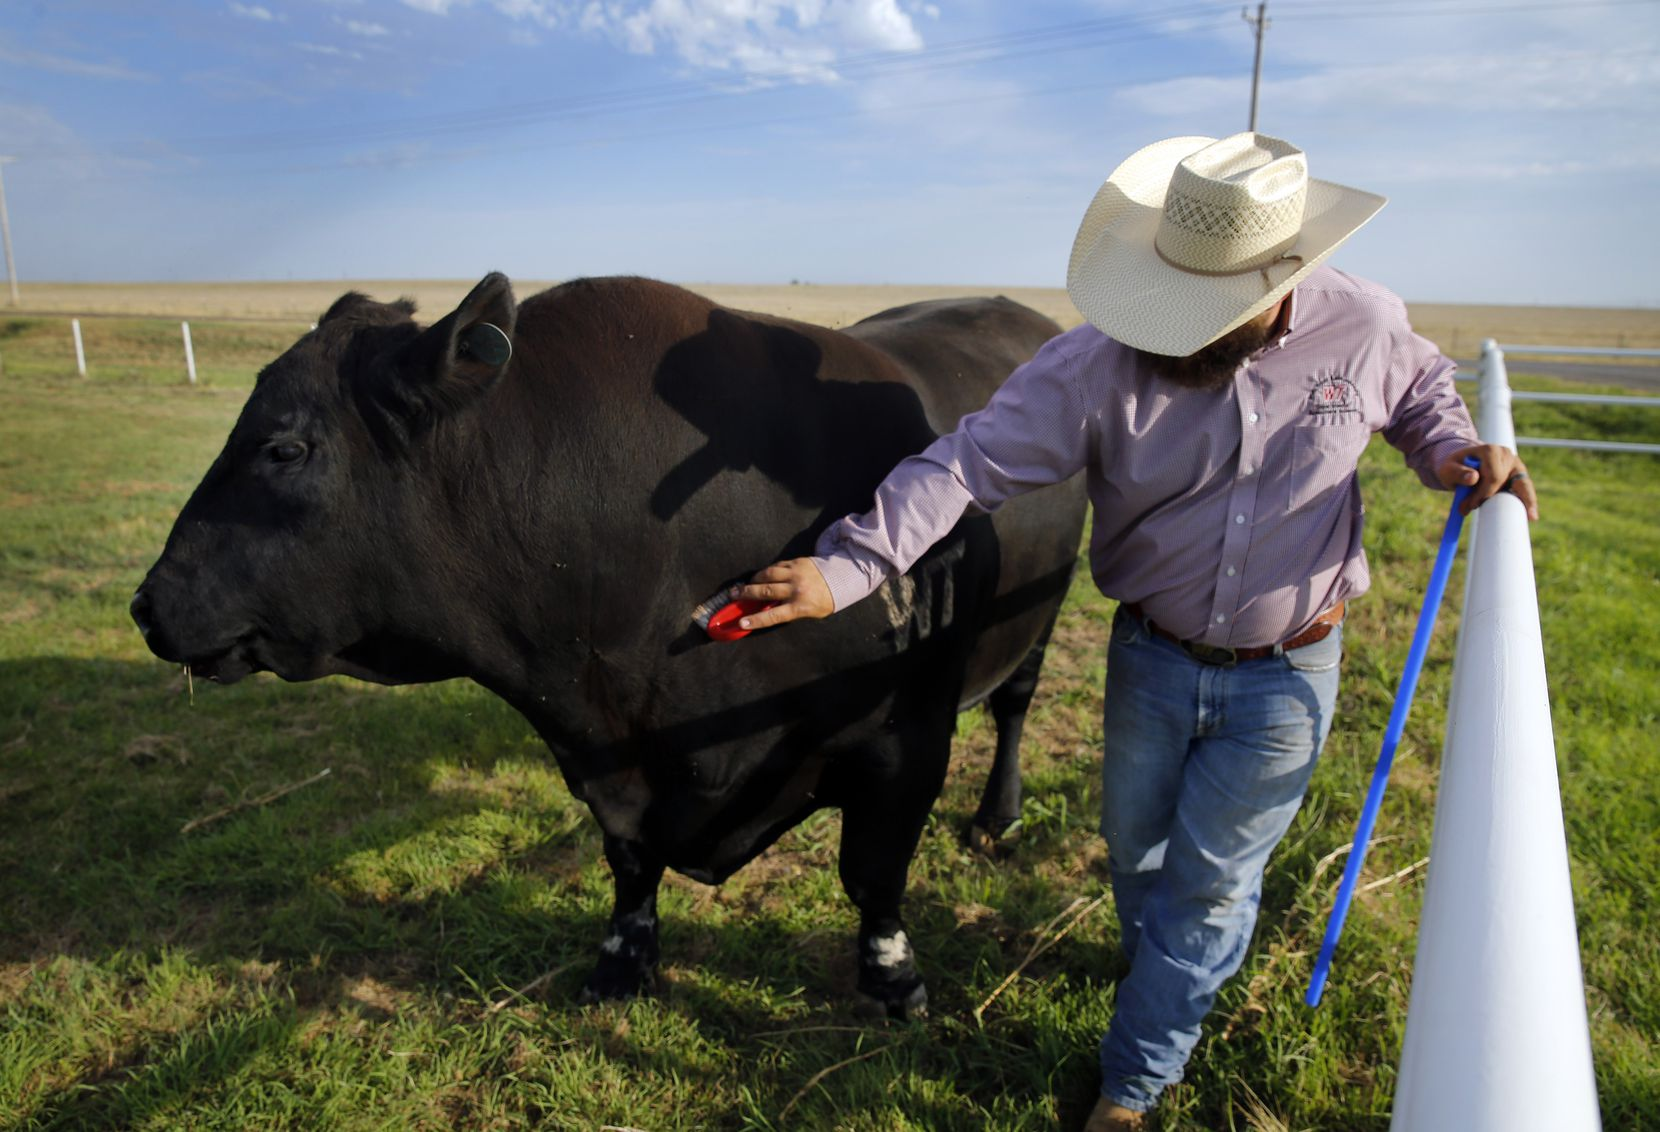 Ranch manager Landon Canterbury brushes Alpha, a 2 1/2-ton cloned bull, at the West Texas A&M University Nance Ranch east of Canyon, Texas, Thursday, June 23, 2016. Canterbury raised Alpha from birth.  The four year old bull was cloned from Prime Yield Grade 1 carcass muscle tissue. (Tom Fox/The Dallas Morning News)